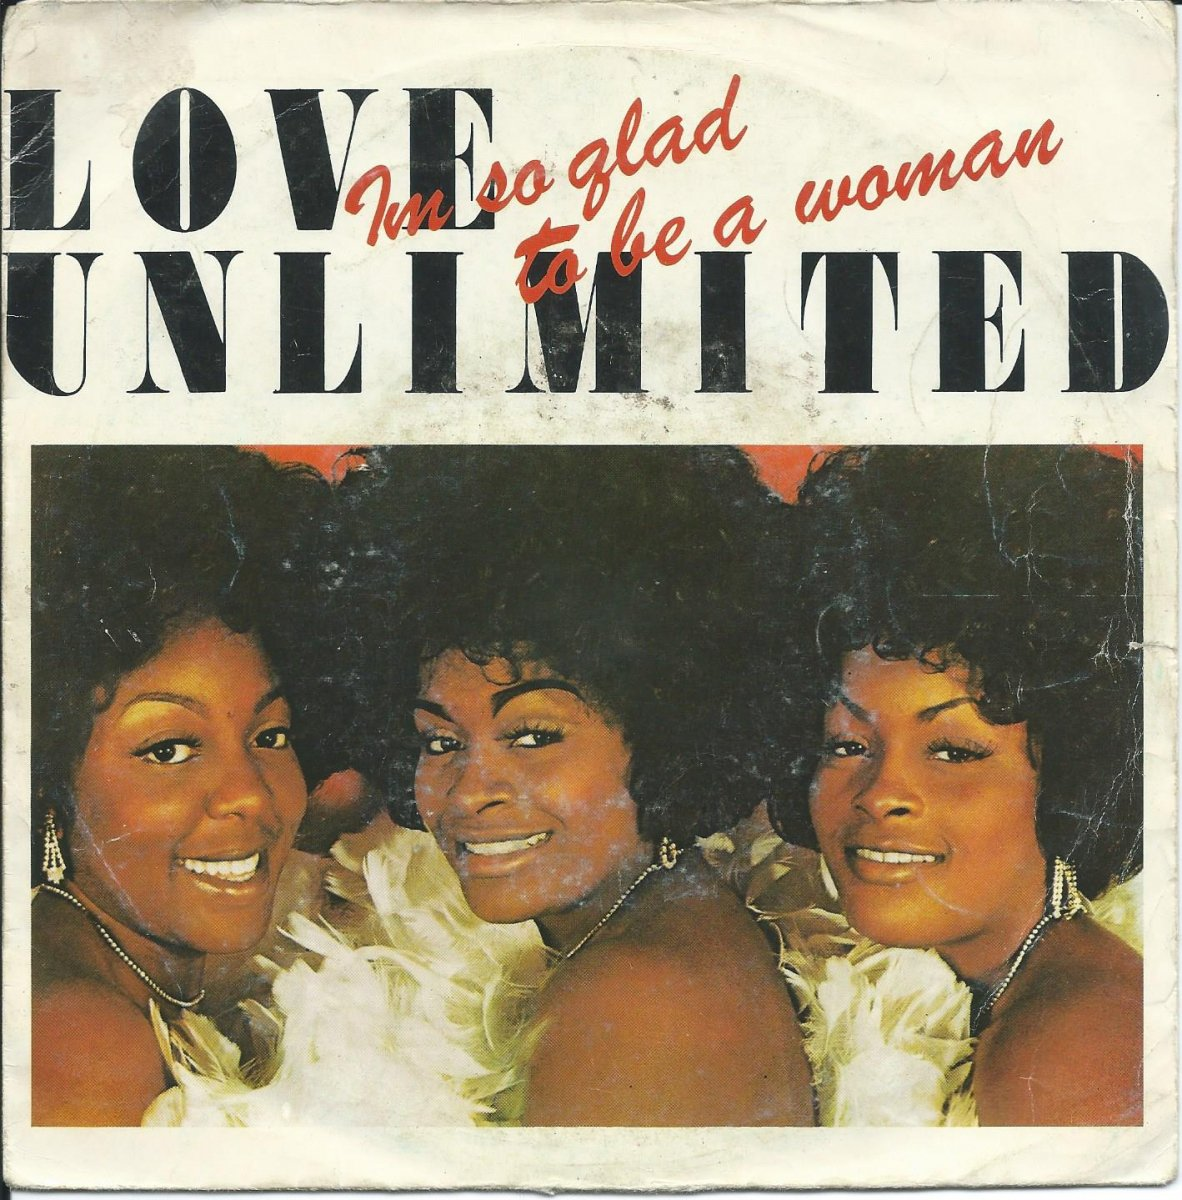 LOVE UNLIMITED ‎/ I'M SO GLAD THAT I'M A WOMAN / I'M HIS WOMAN (7